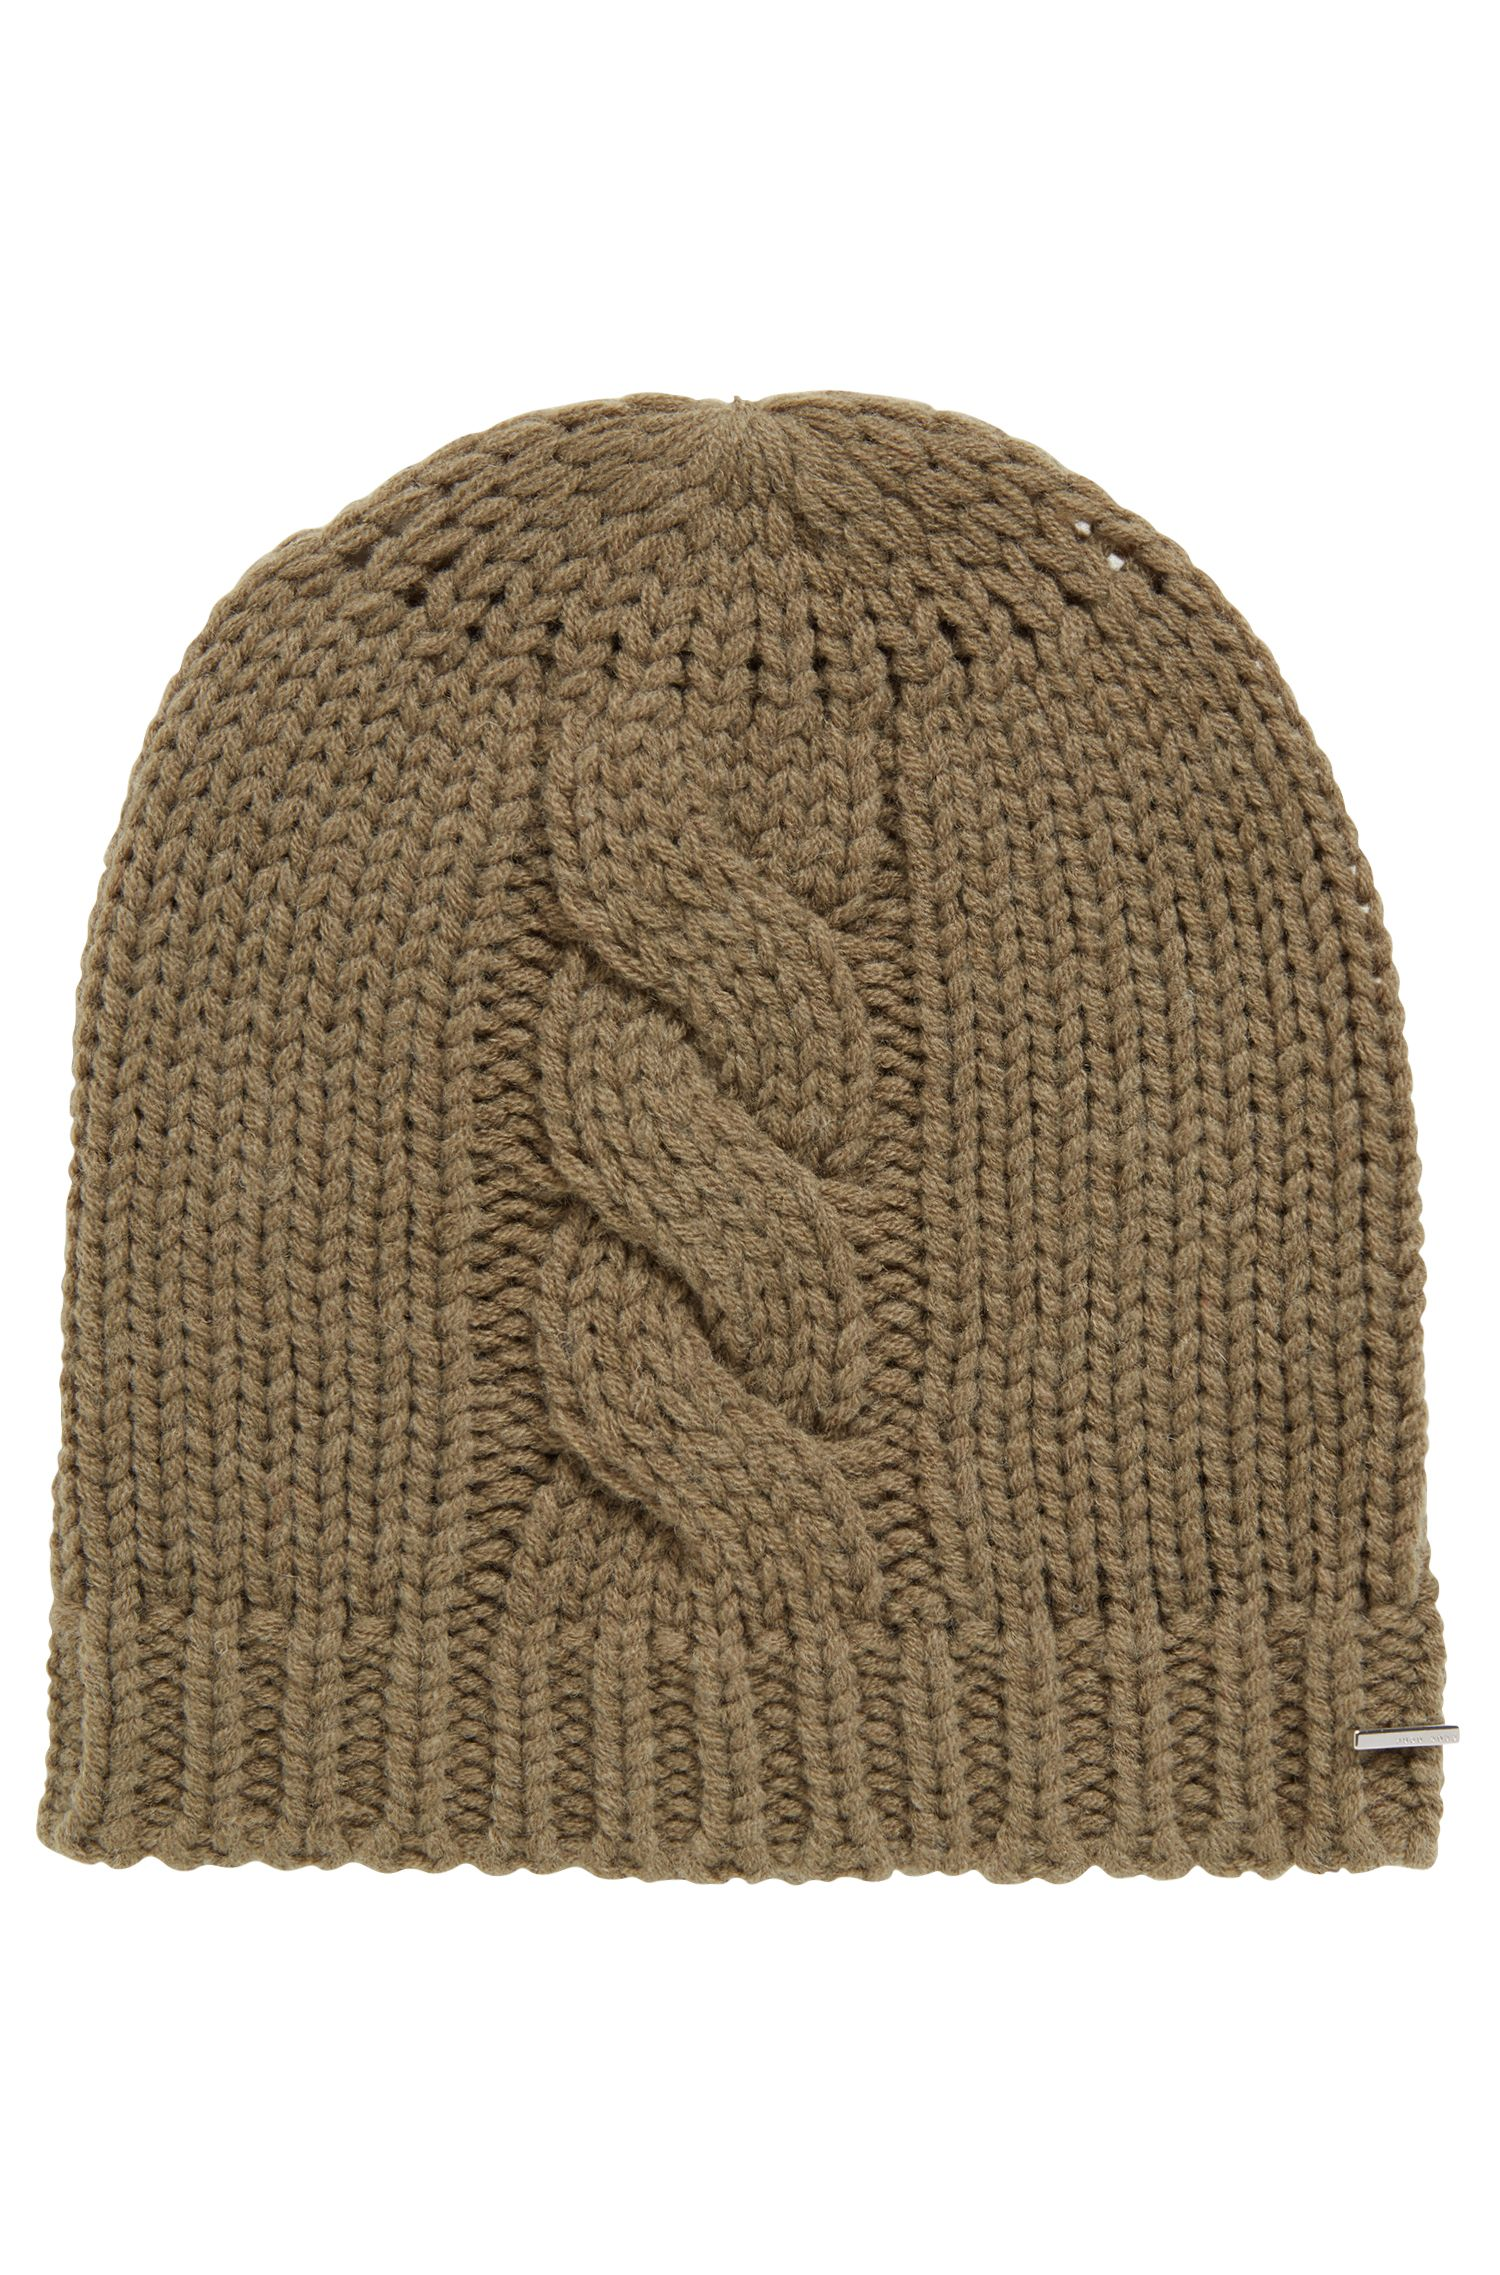 Beanie hat in a wool blend with cable structure, Khaki